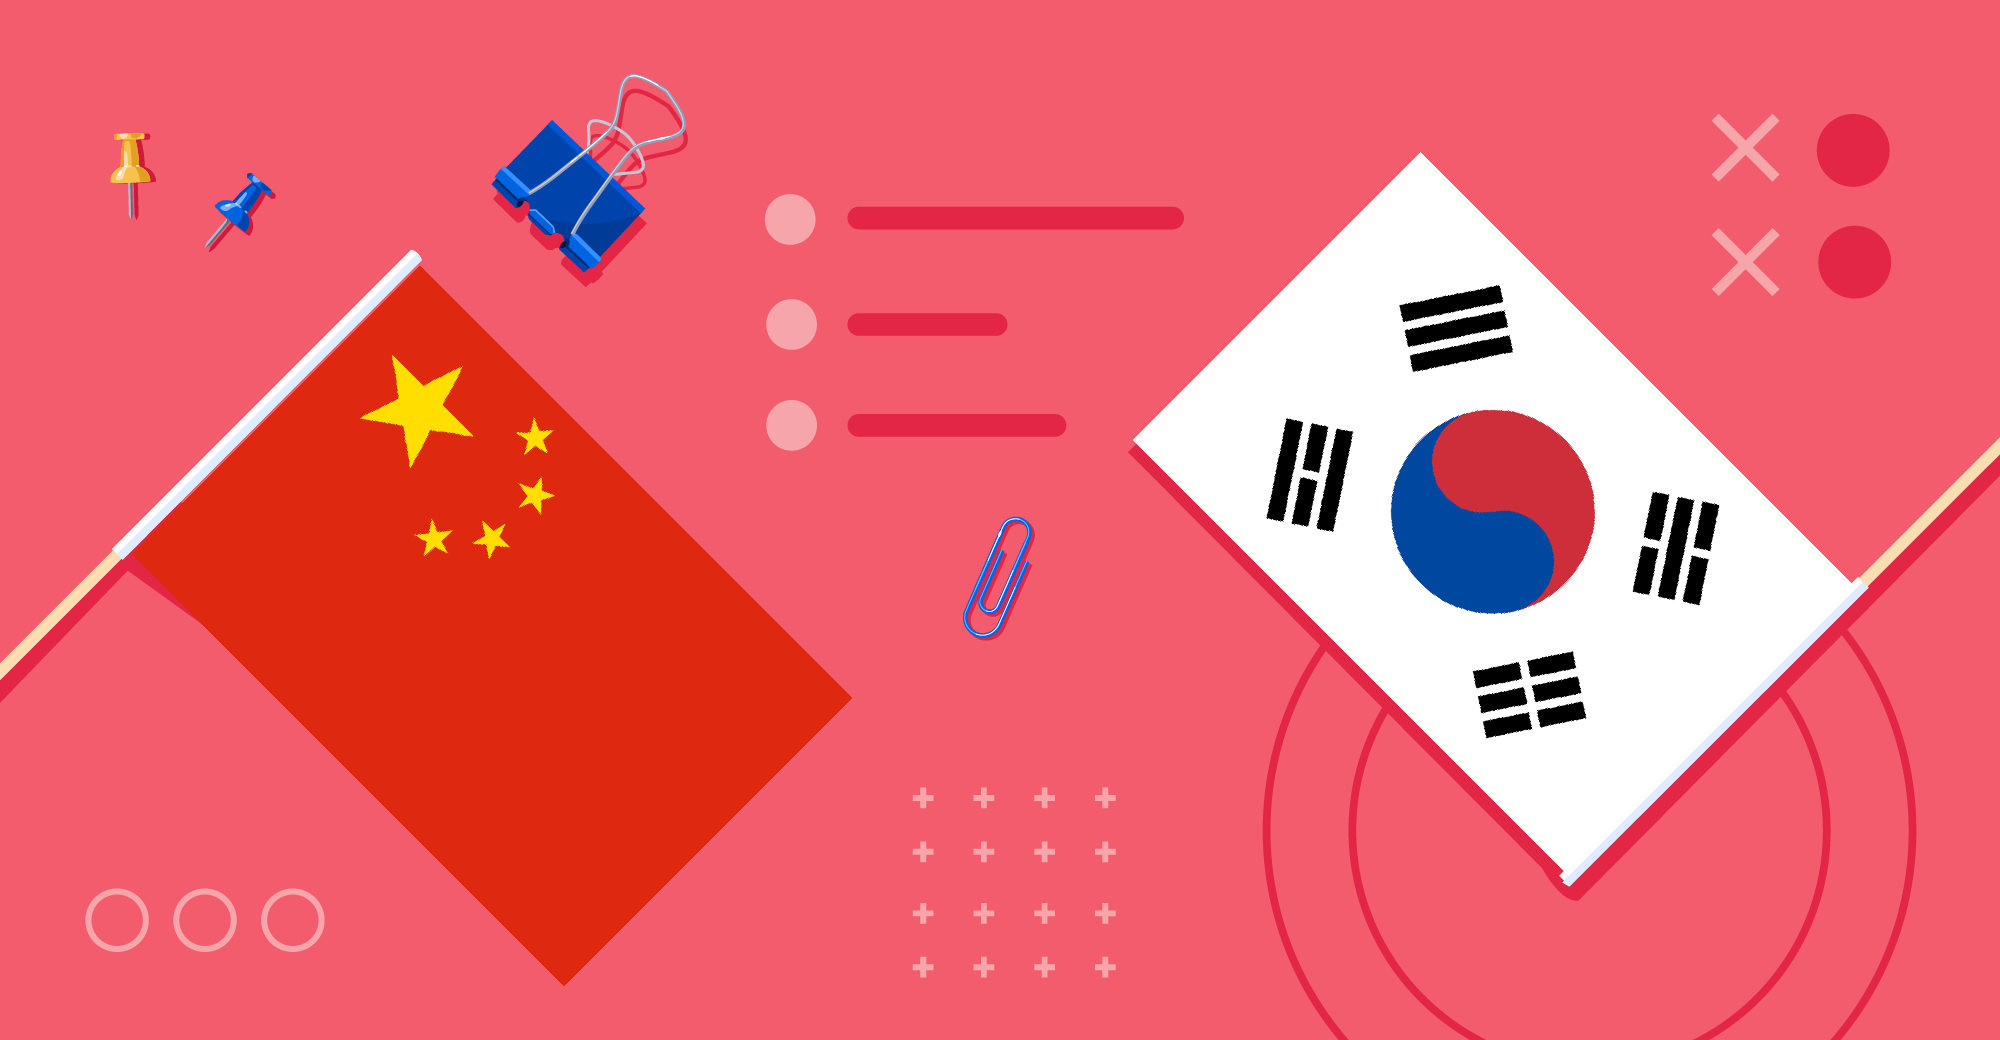 Flag of China and South Korea